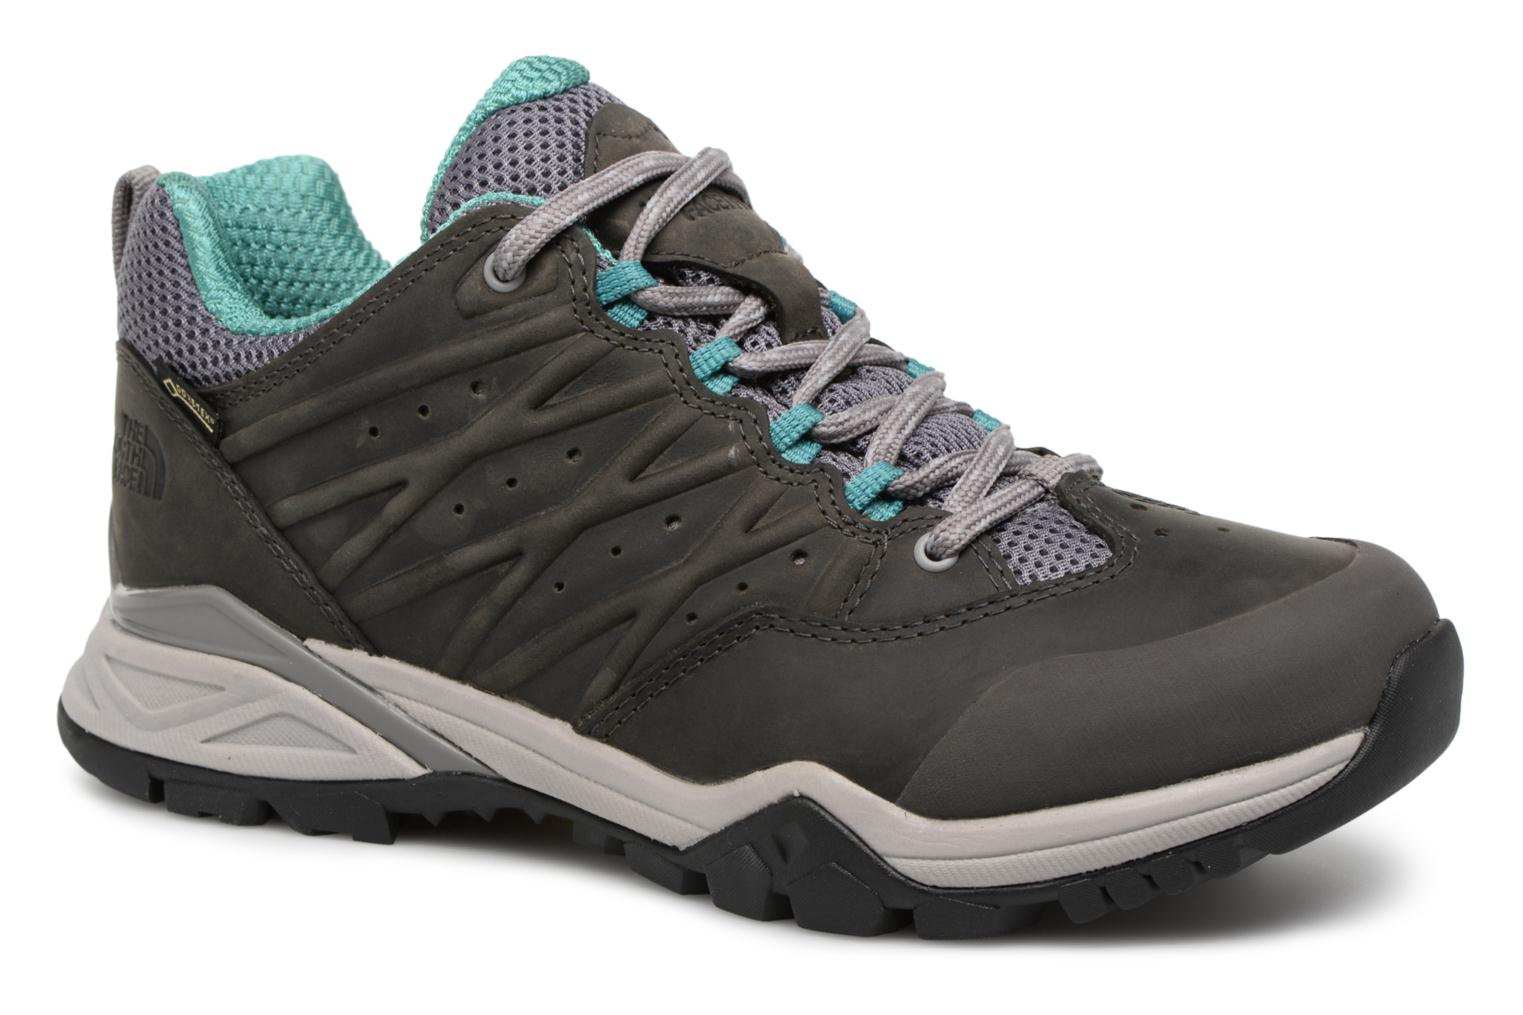 Hedgehog Hike II GTX W by The North Face